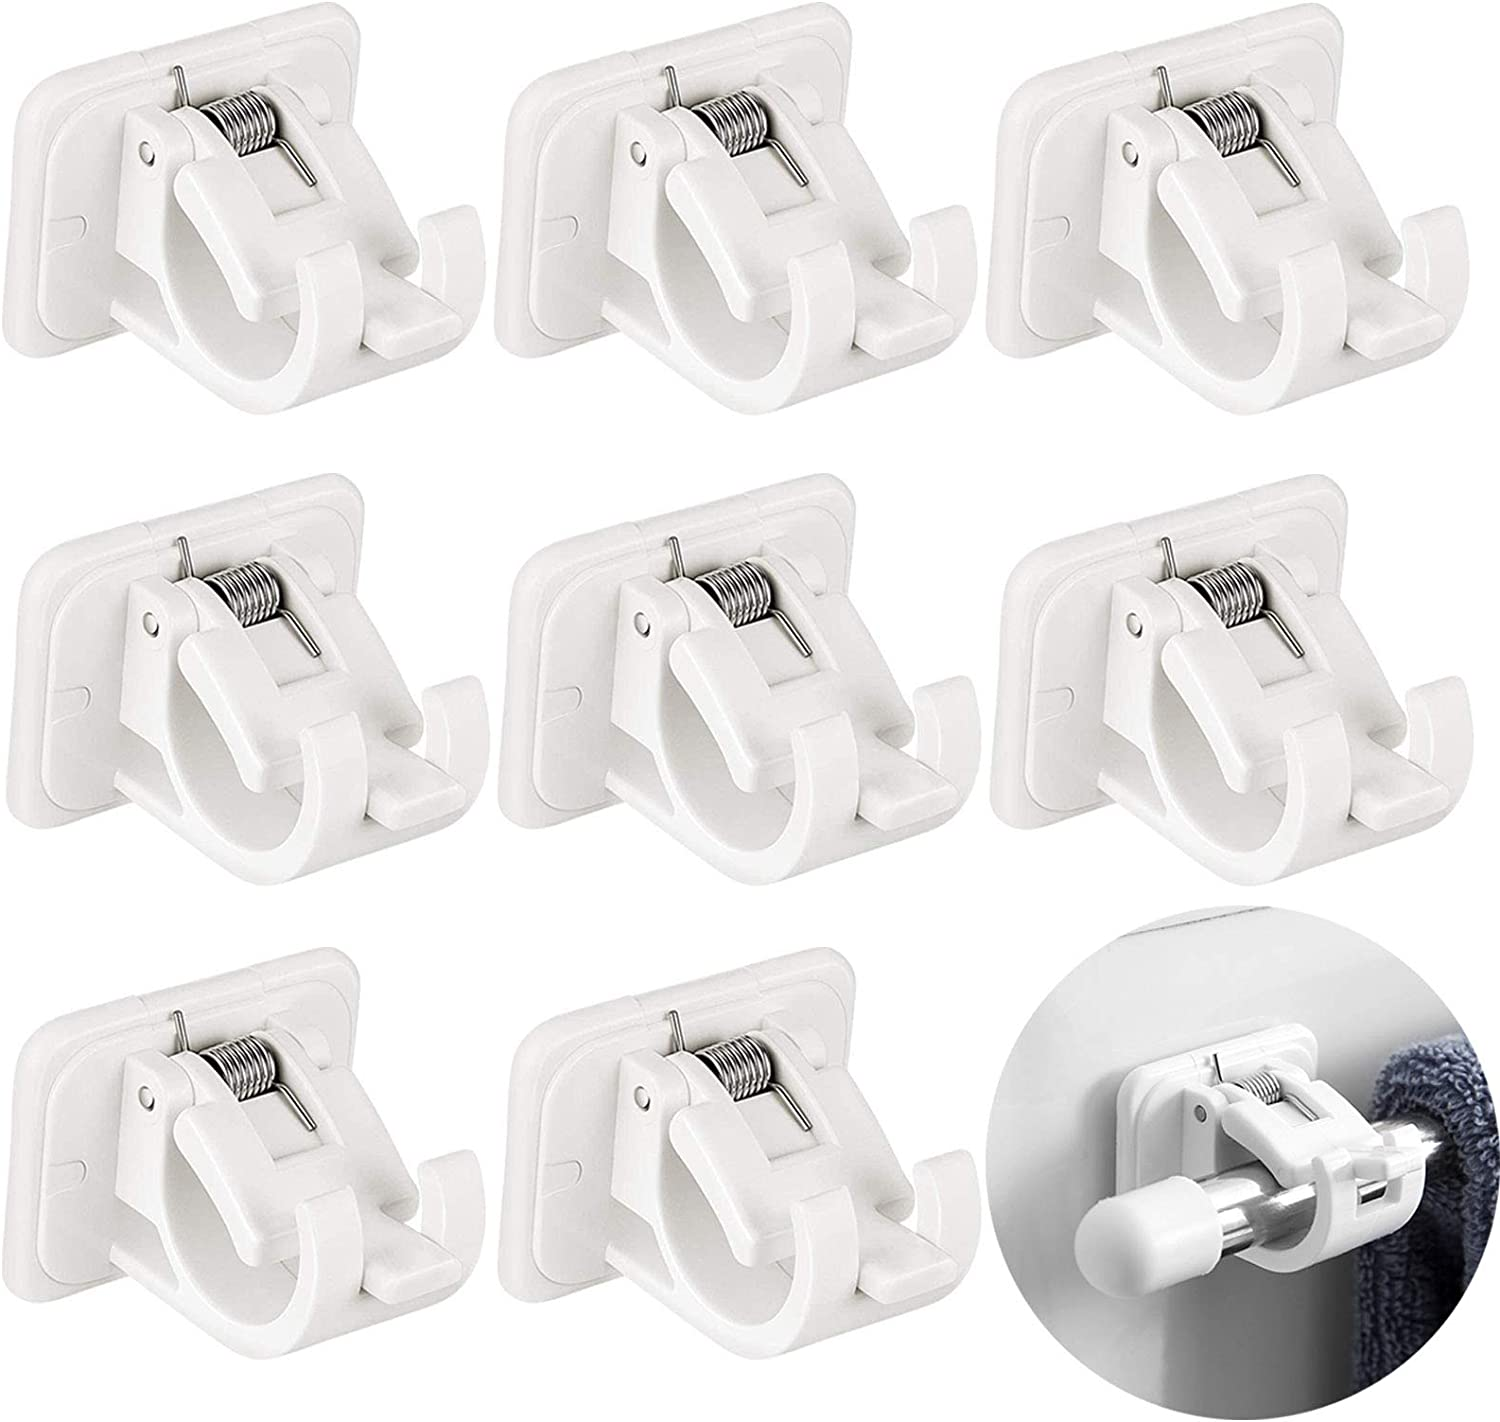 Curtain Rod Holder,8 Pcs Curtains Bracket Crossbar Hook Self Adhesive Rods Hanger, No Drill Brackets Fixing Holders, Wall Hooks Drapery Pole & Fixings for Bathroom Kitchen Home Bathroom and Hotel Use